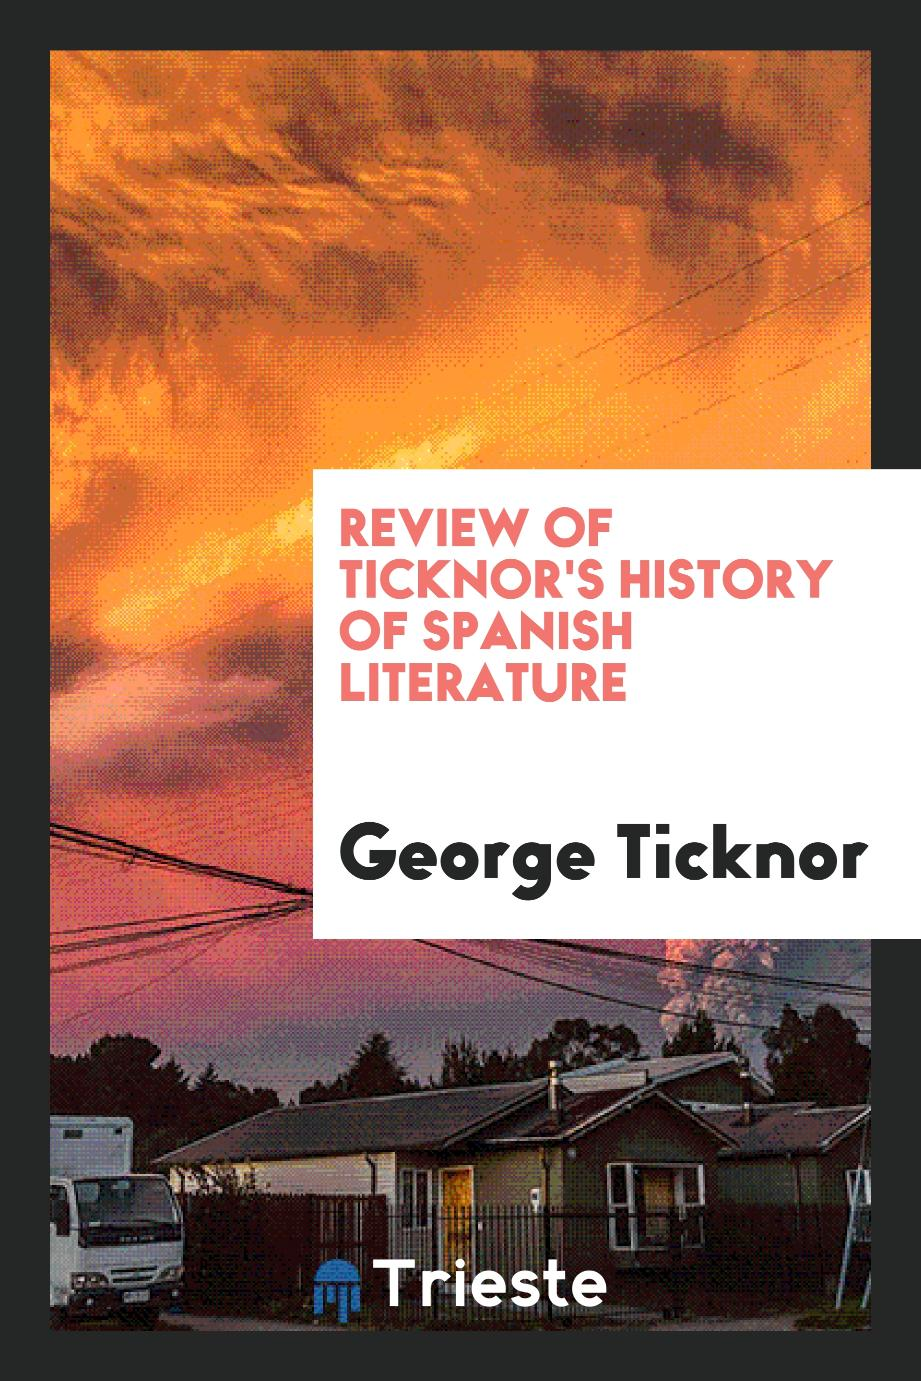 Review of Ticknor's History of Spanish Literature